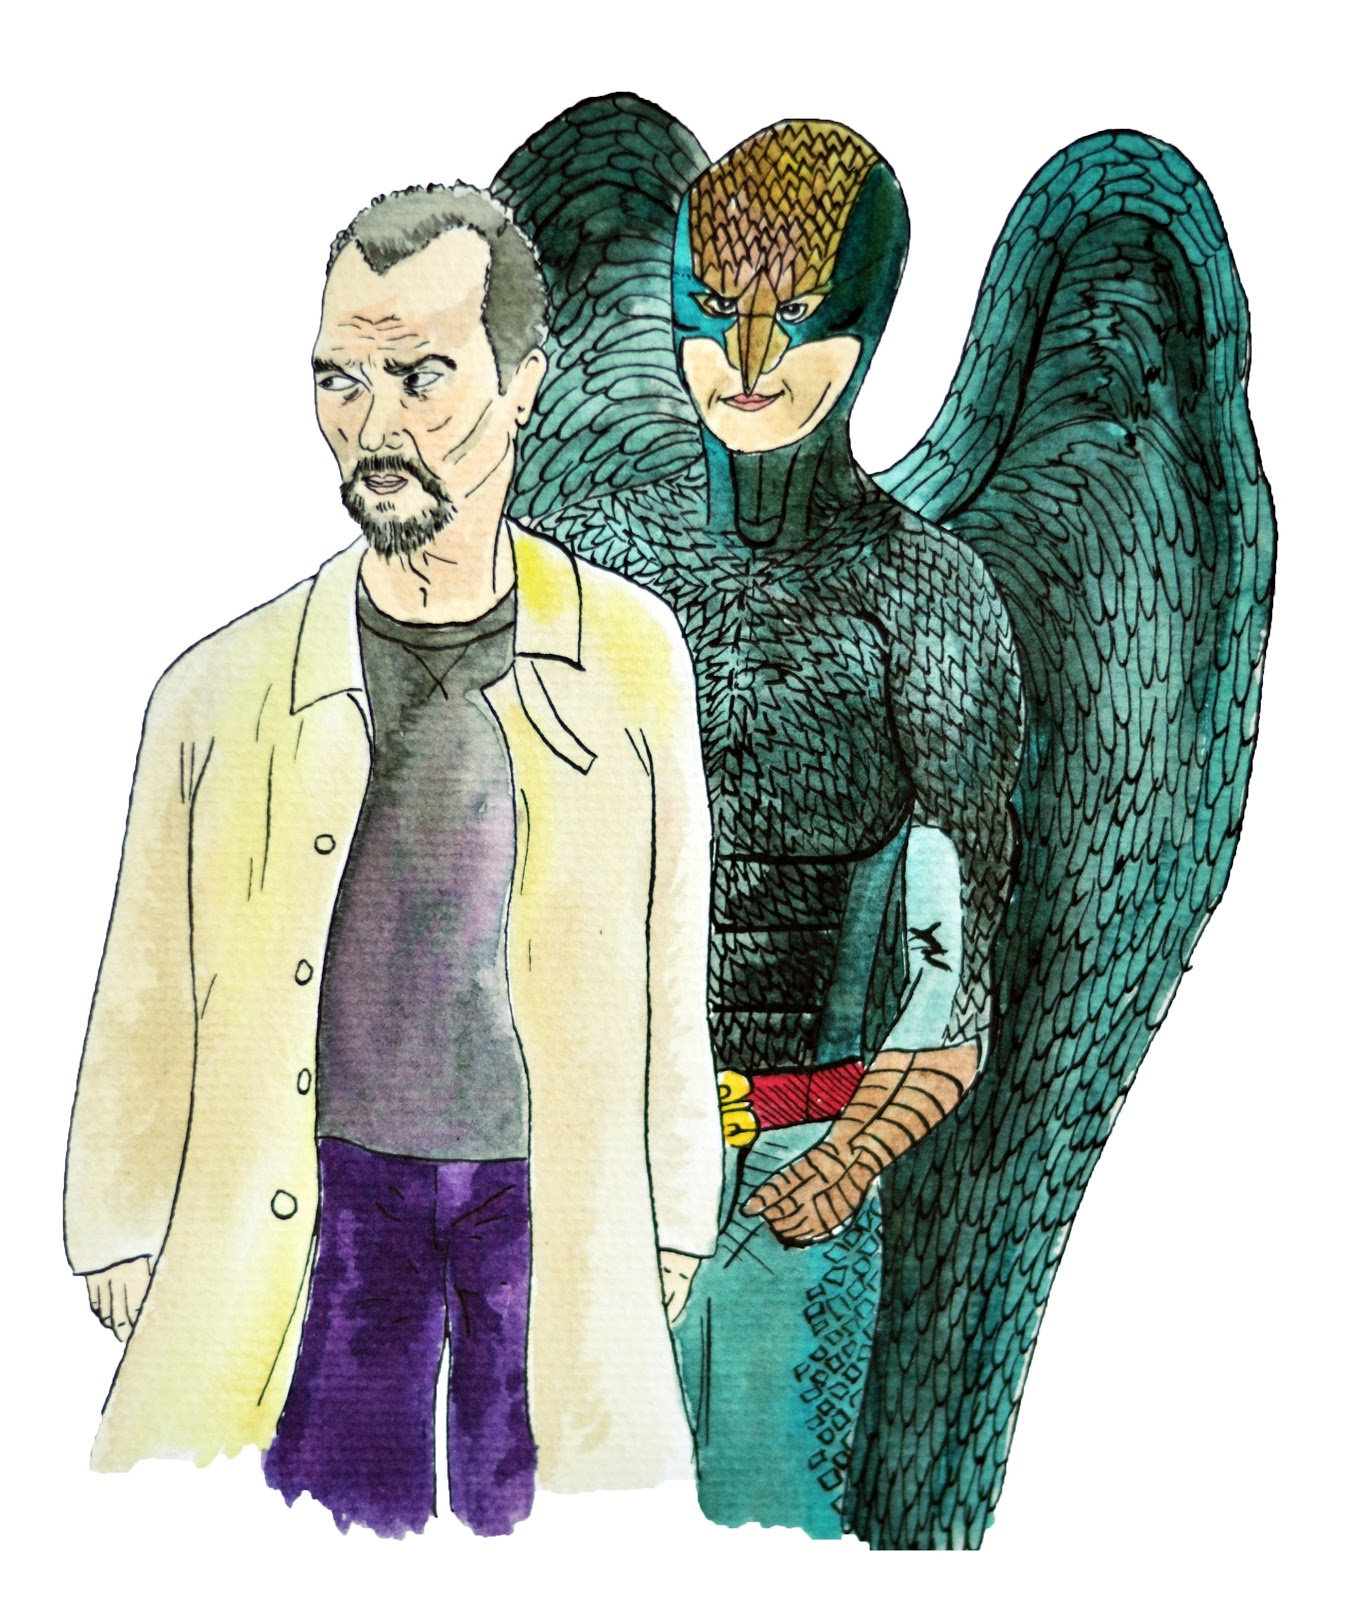 Birdman Oscars 2015 illustration